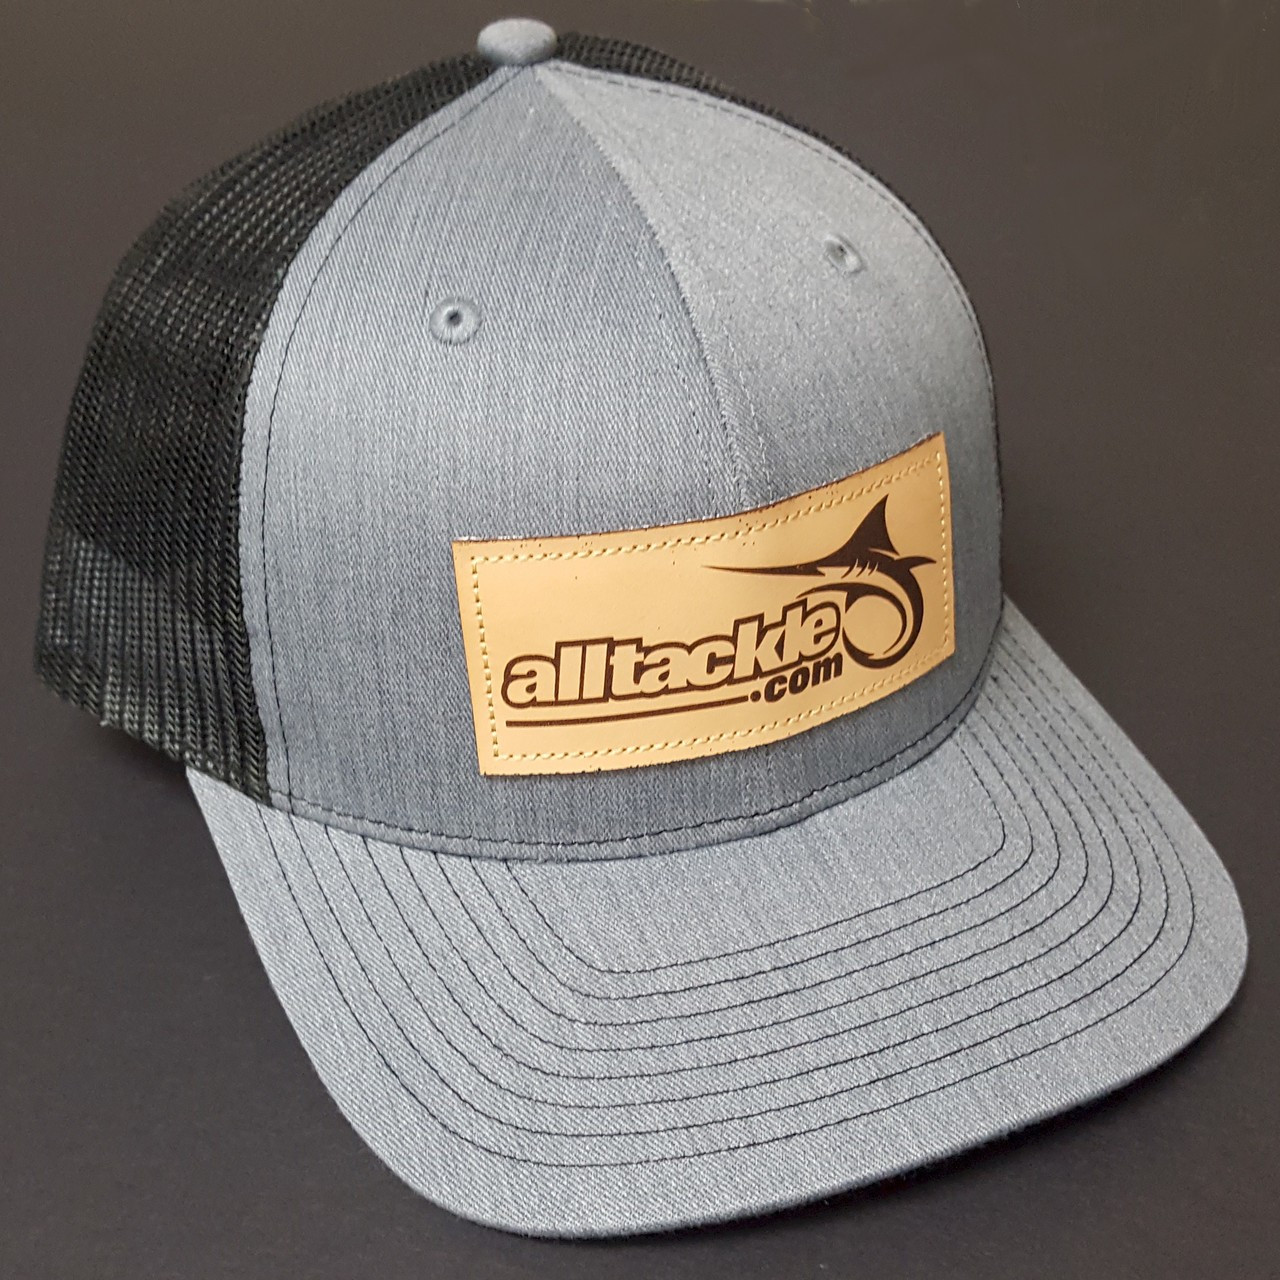 Alltackle Fishing Hat - Patch - Gray & Black